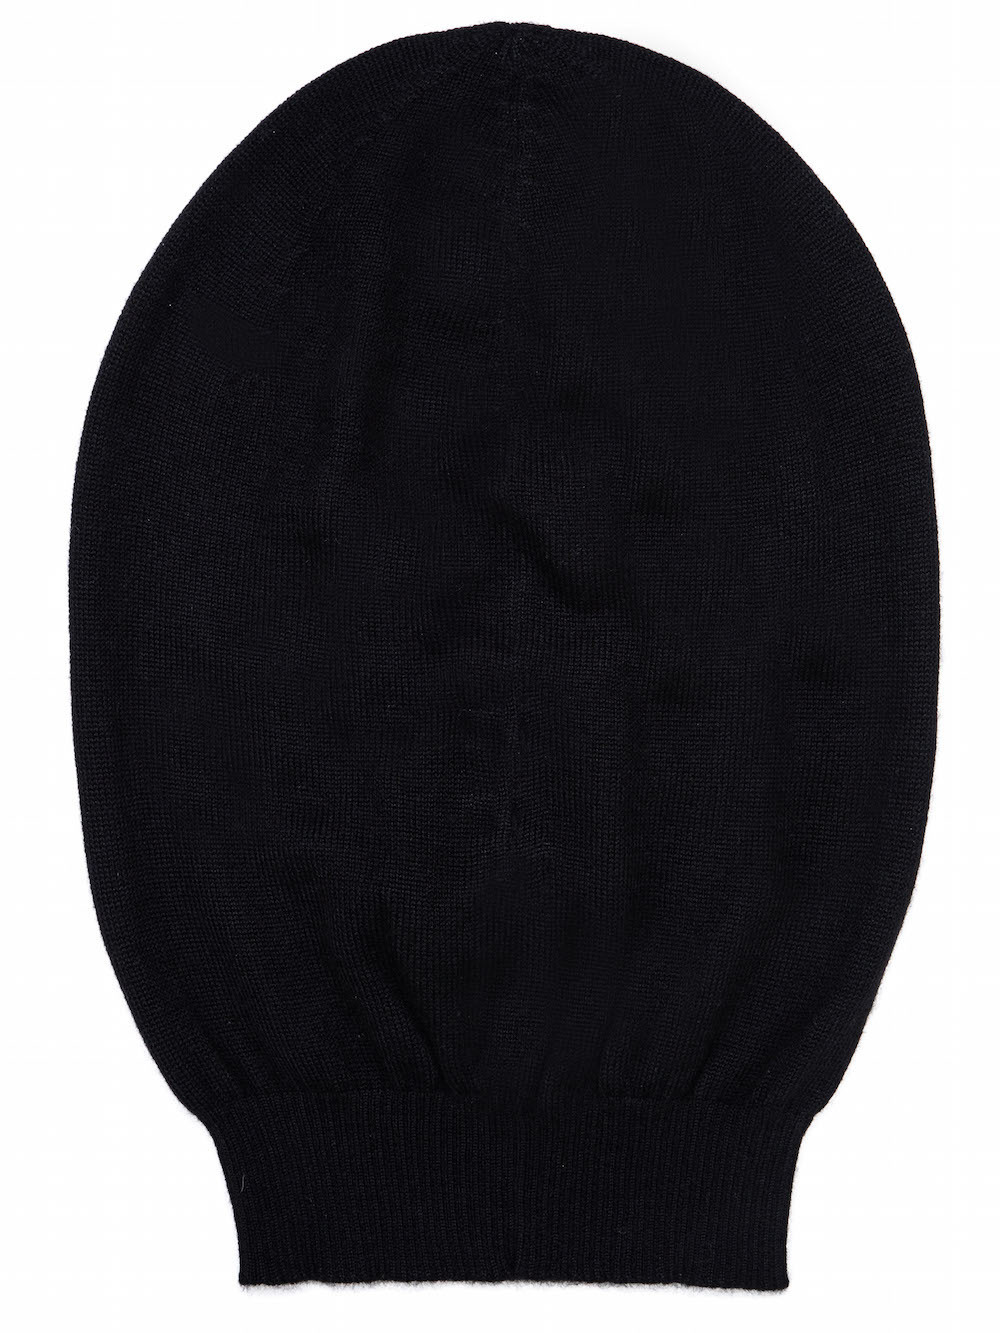 803e834b95f RICK OWENS MEDIUM HAT IN BLACK CASHMERE HAS A SLIGHTLY OVERSIZED FIT AND MORE  VOLUME WHEN